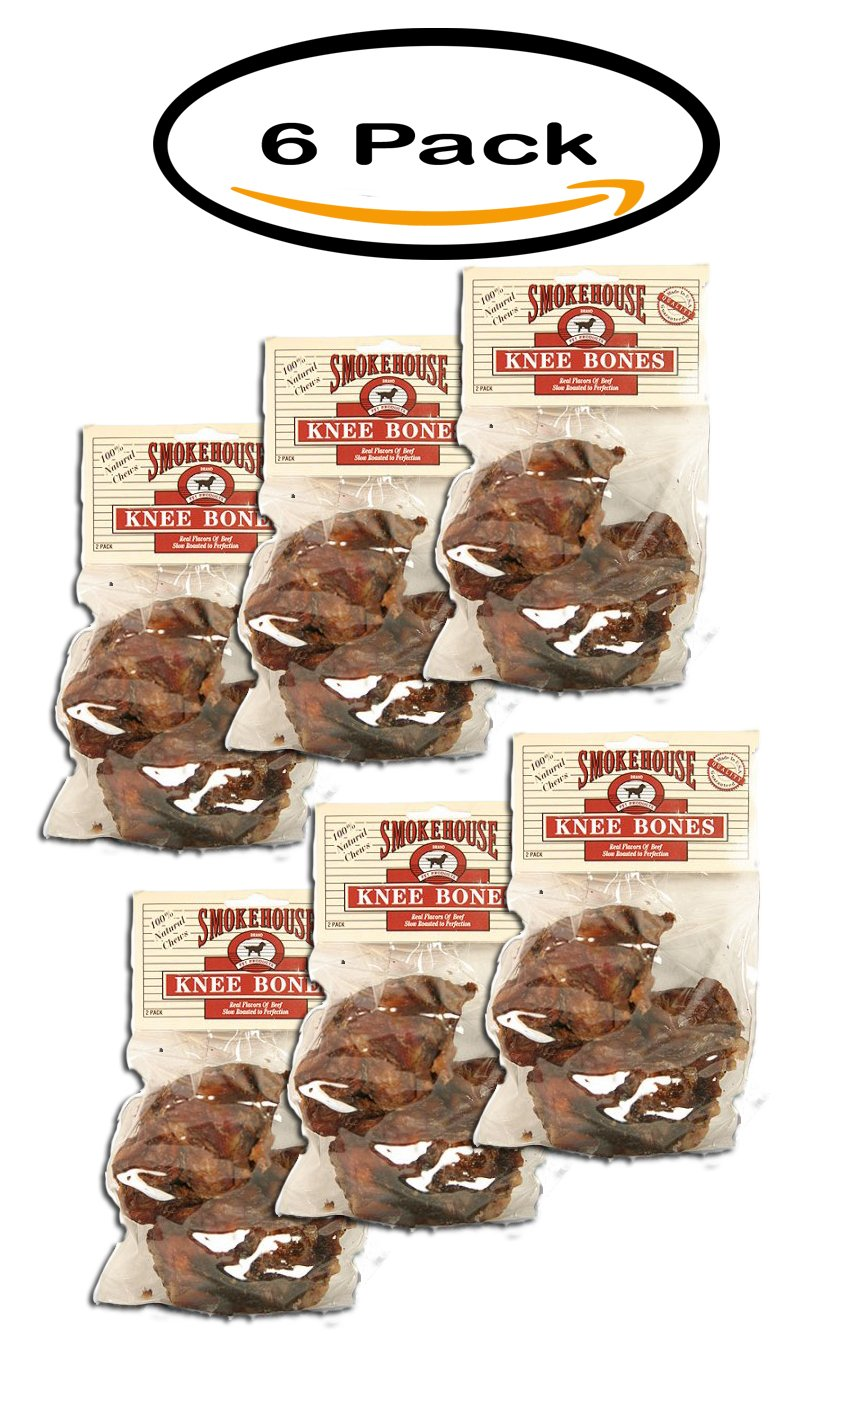 PACK OF 6 - Smokehouse Knee Bones, 2 Pack